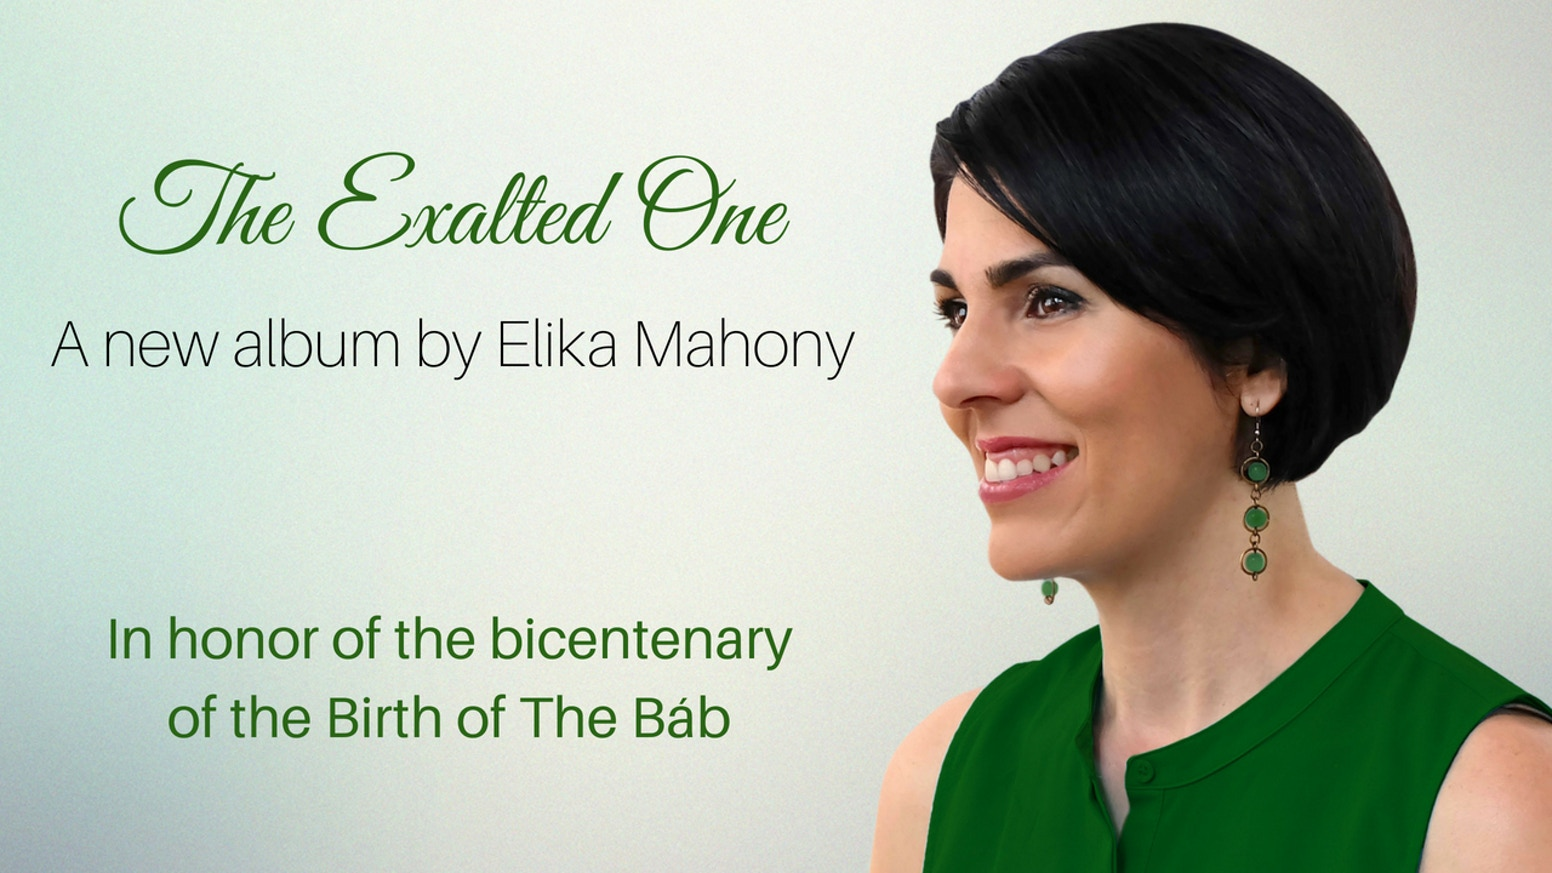 A music album created in honor of the celebration of the bicentenary of the Birth of The Báb